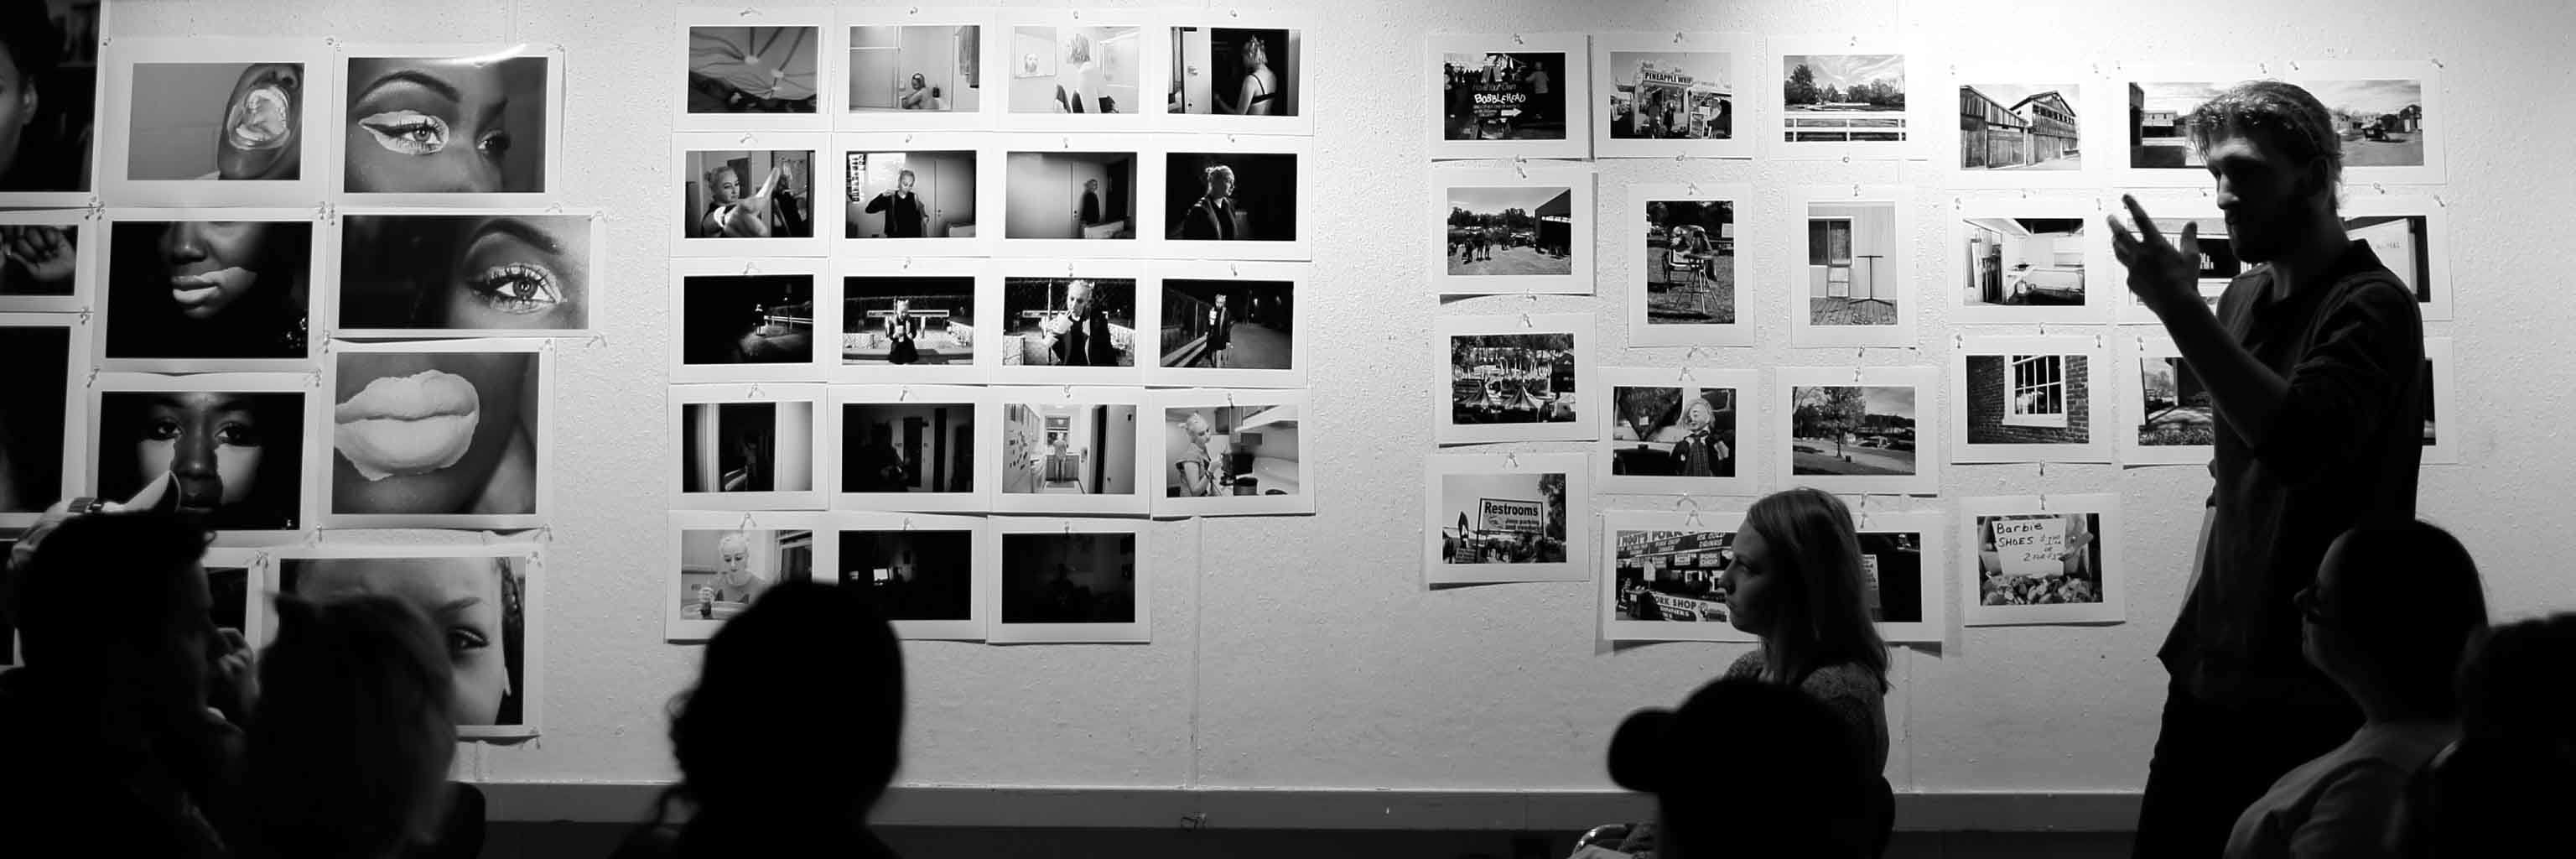 A wall of black and white photos